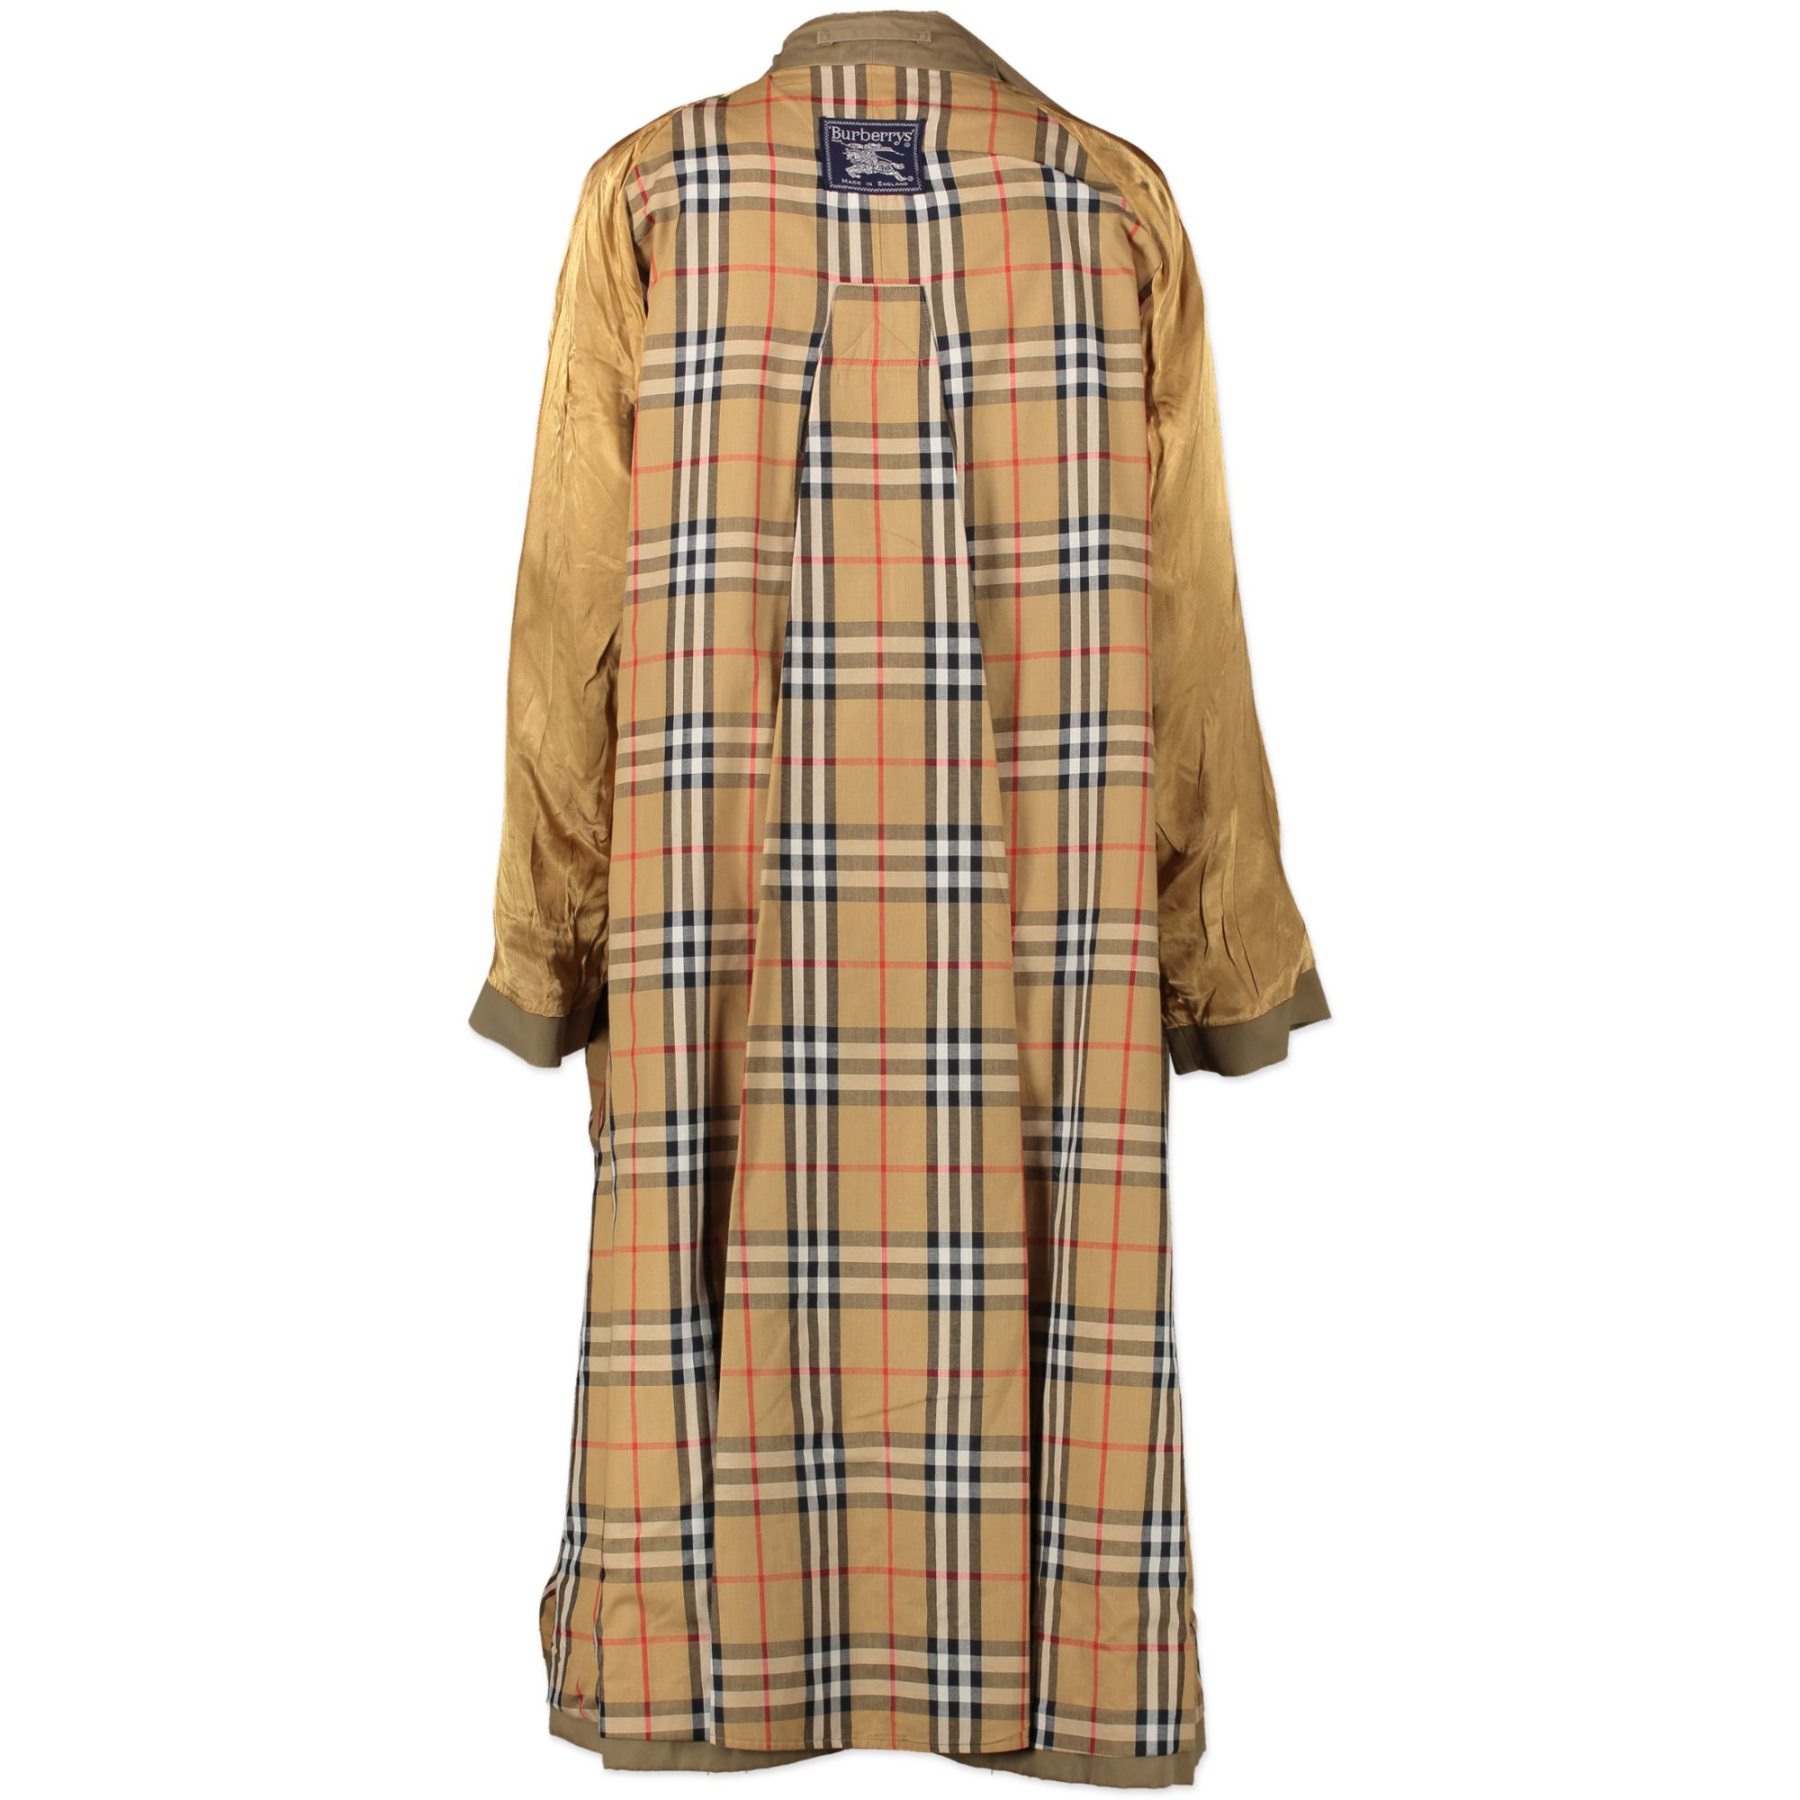 Authentic secondhand Burberry Beige The Kensington Check Trench Coat designer clothes designer high end brands fashion luxury vintage webshop safe secure online shopping